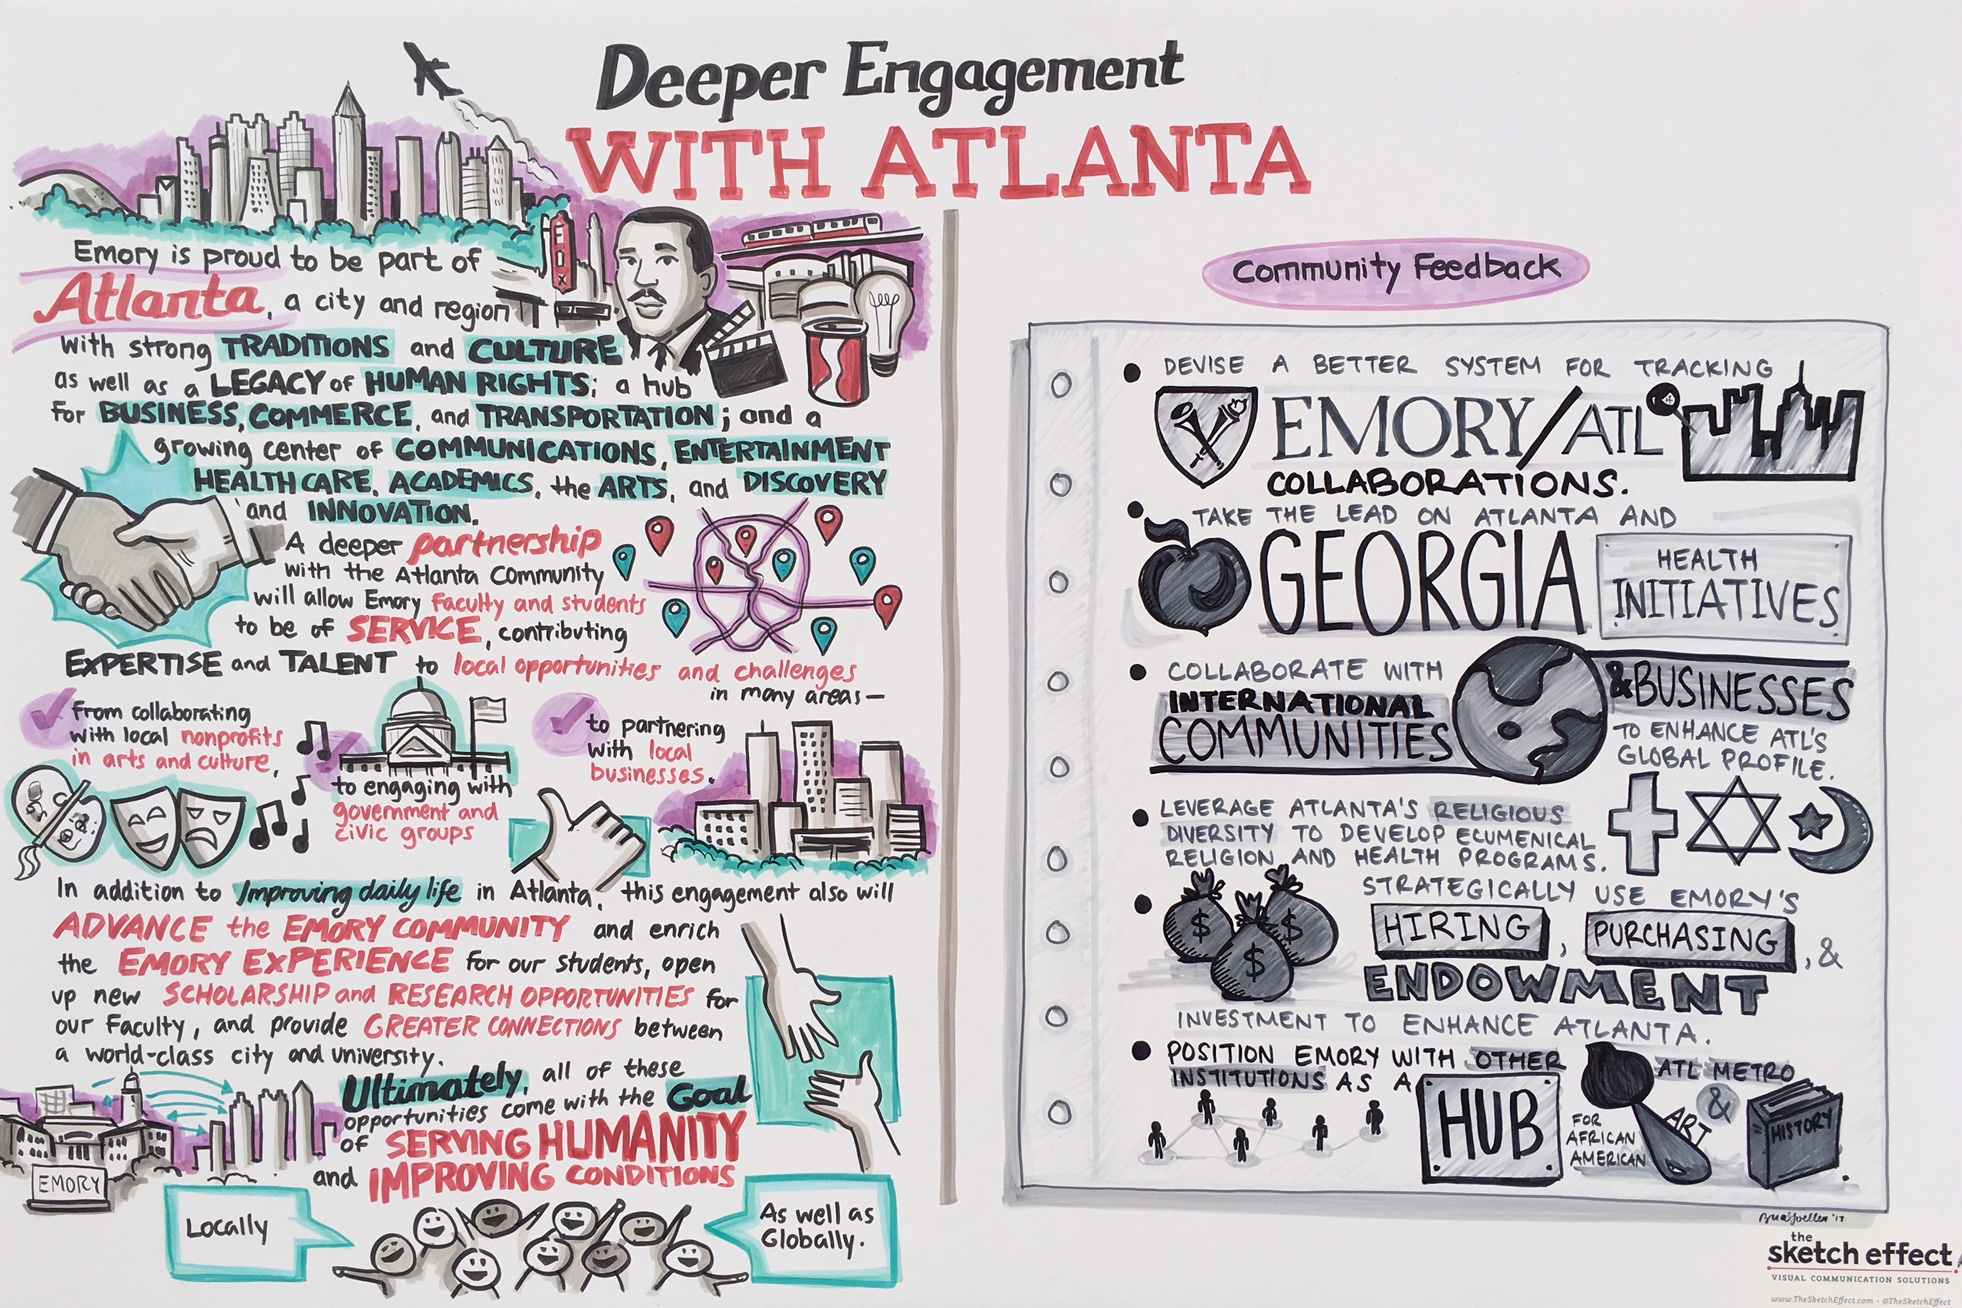 Deeper Engagement with Atlanta